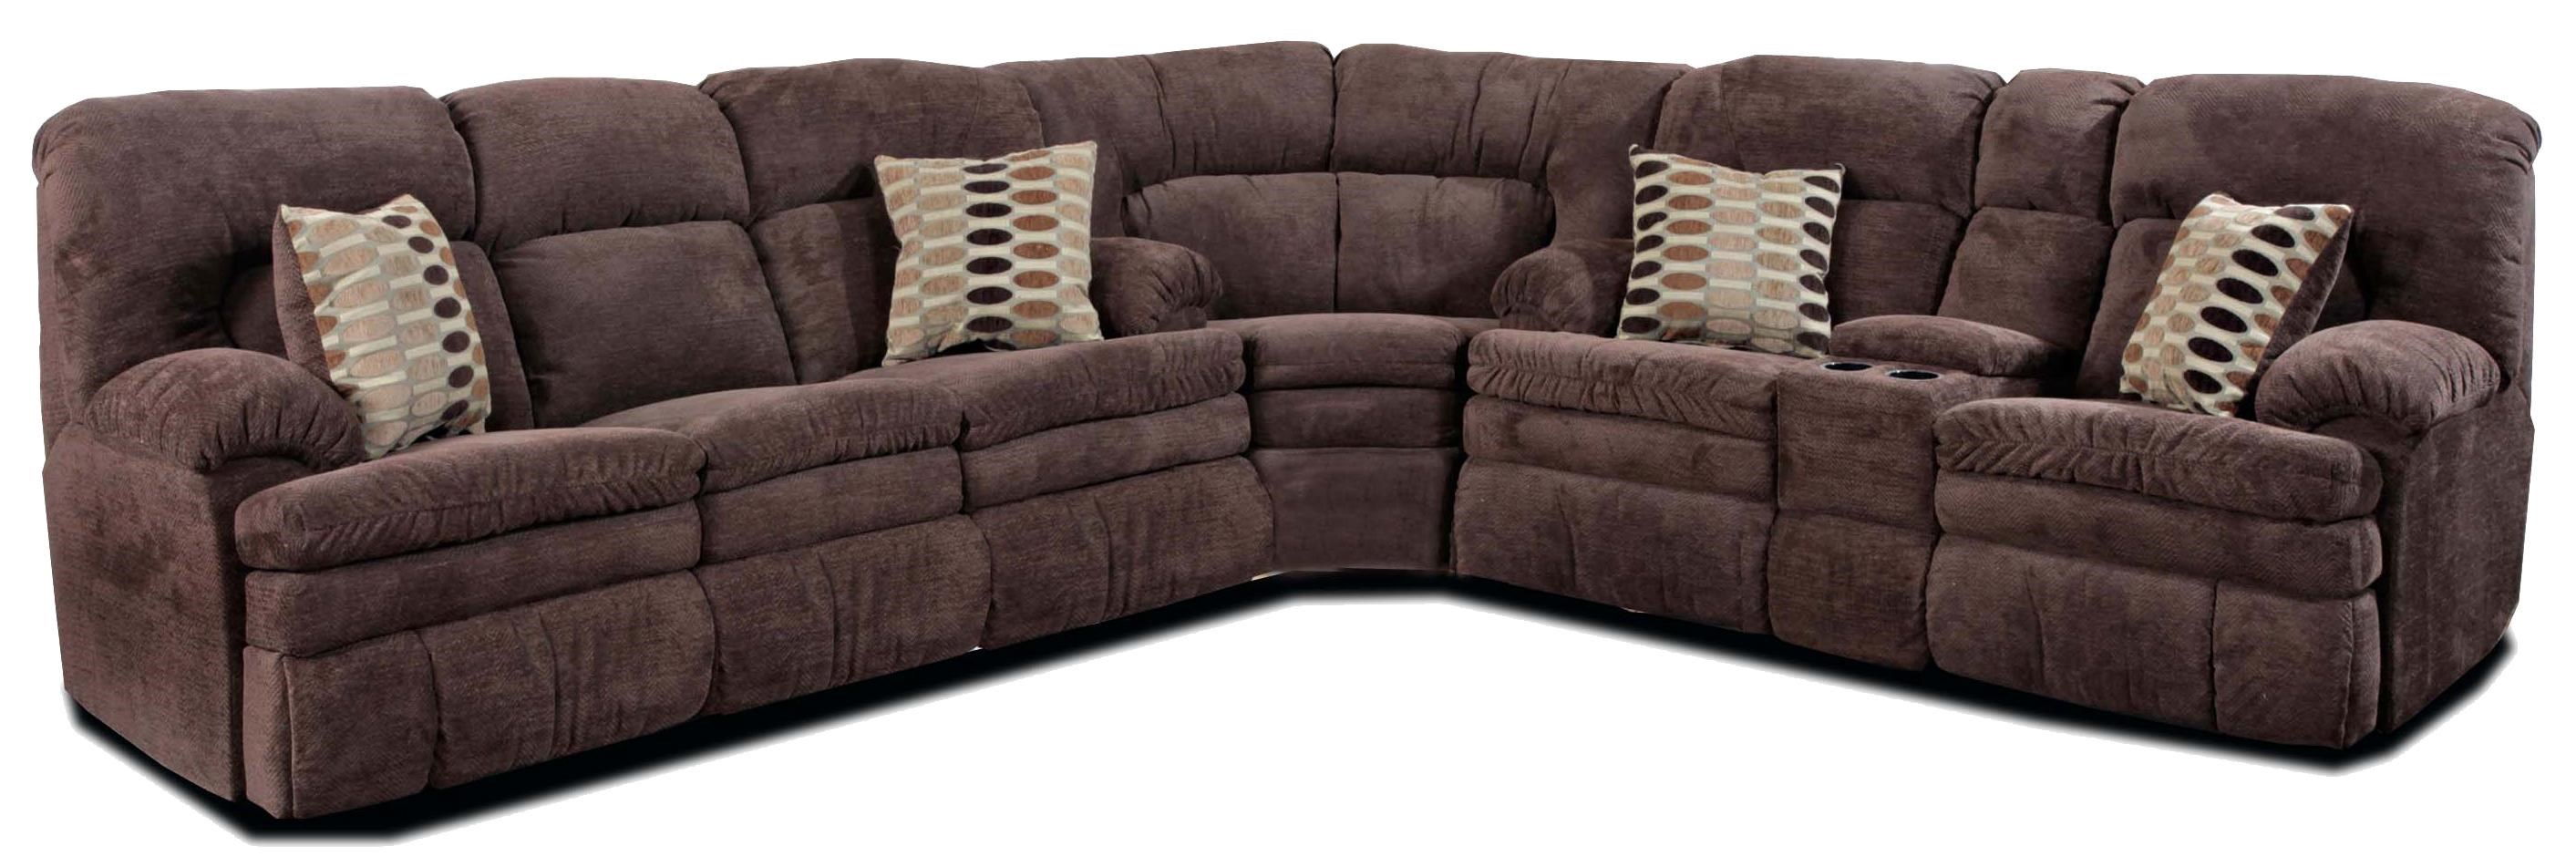 crate and barrel verano sofa lee industries slipcovered apartment corner sectional homestretch 103 chocolate series ...